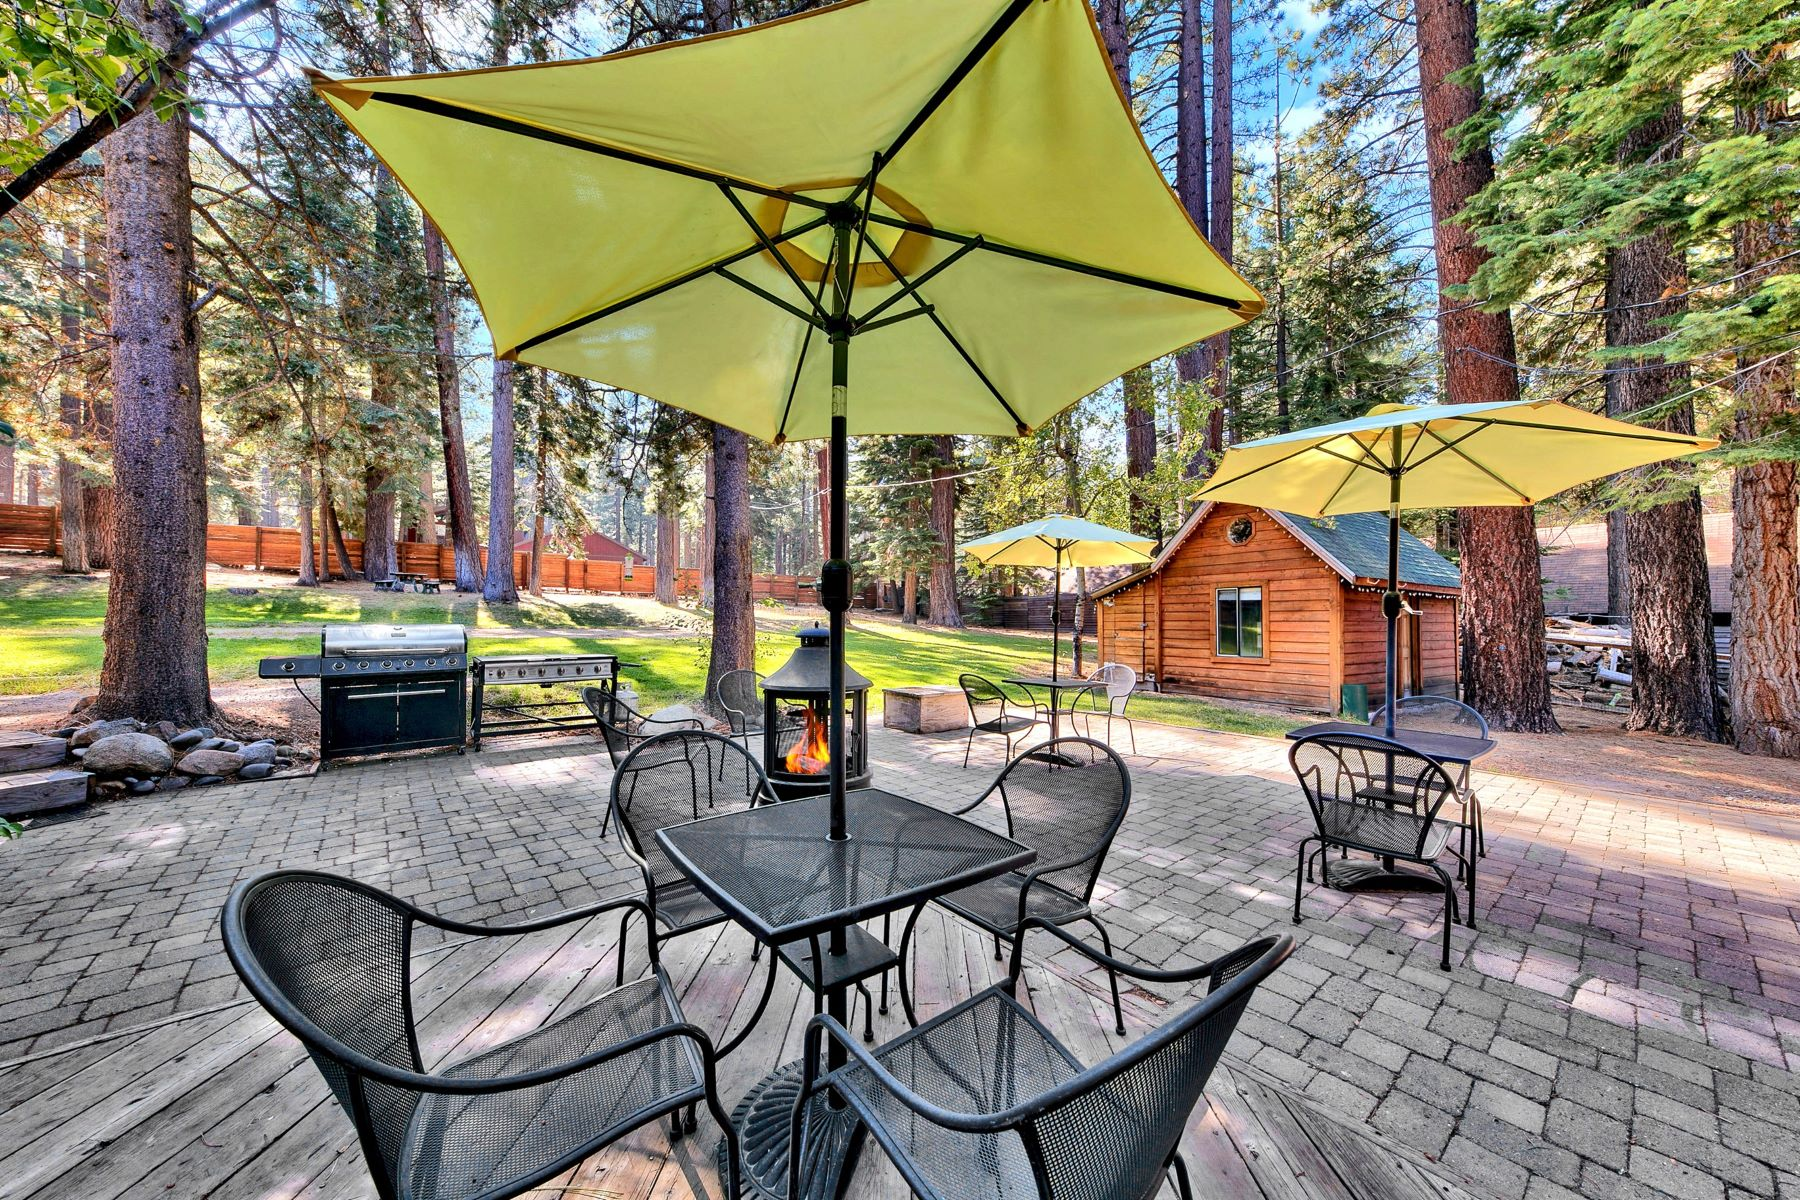 Additional photo for property listing at Mountain Retreat on Emerald Bay Road 608/580 Emerald Bay Rd South Lake Tahoe, California 96150 United States